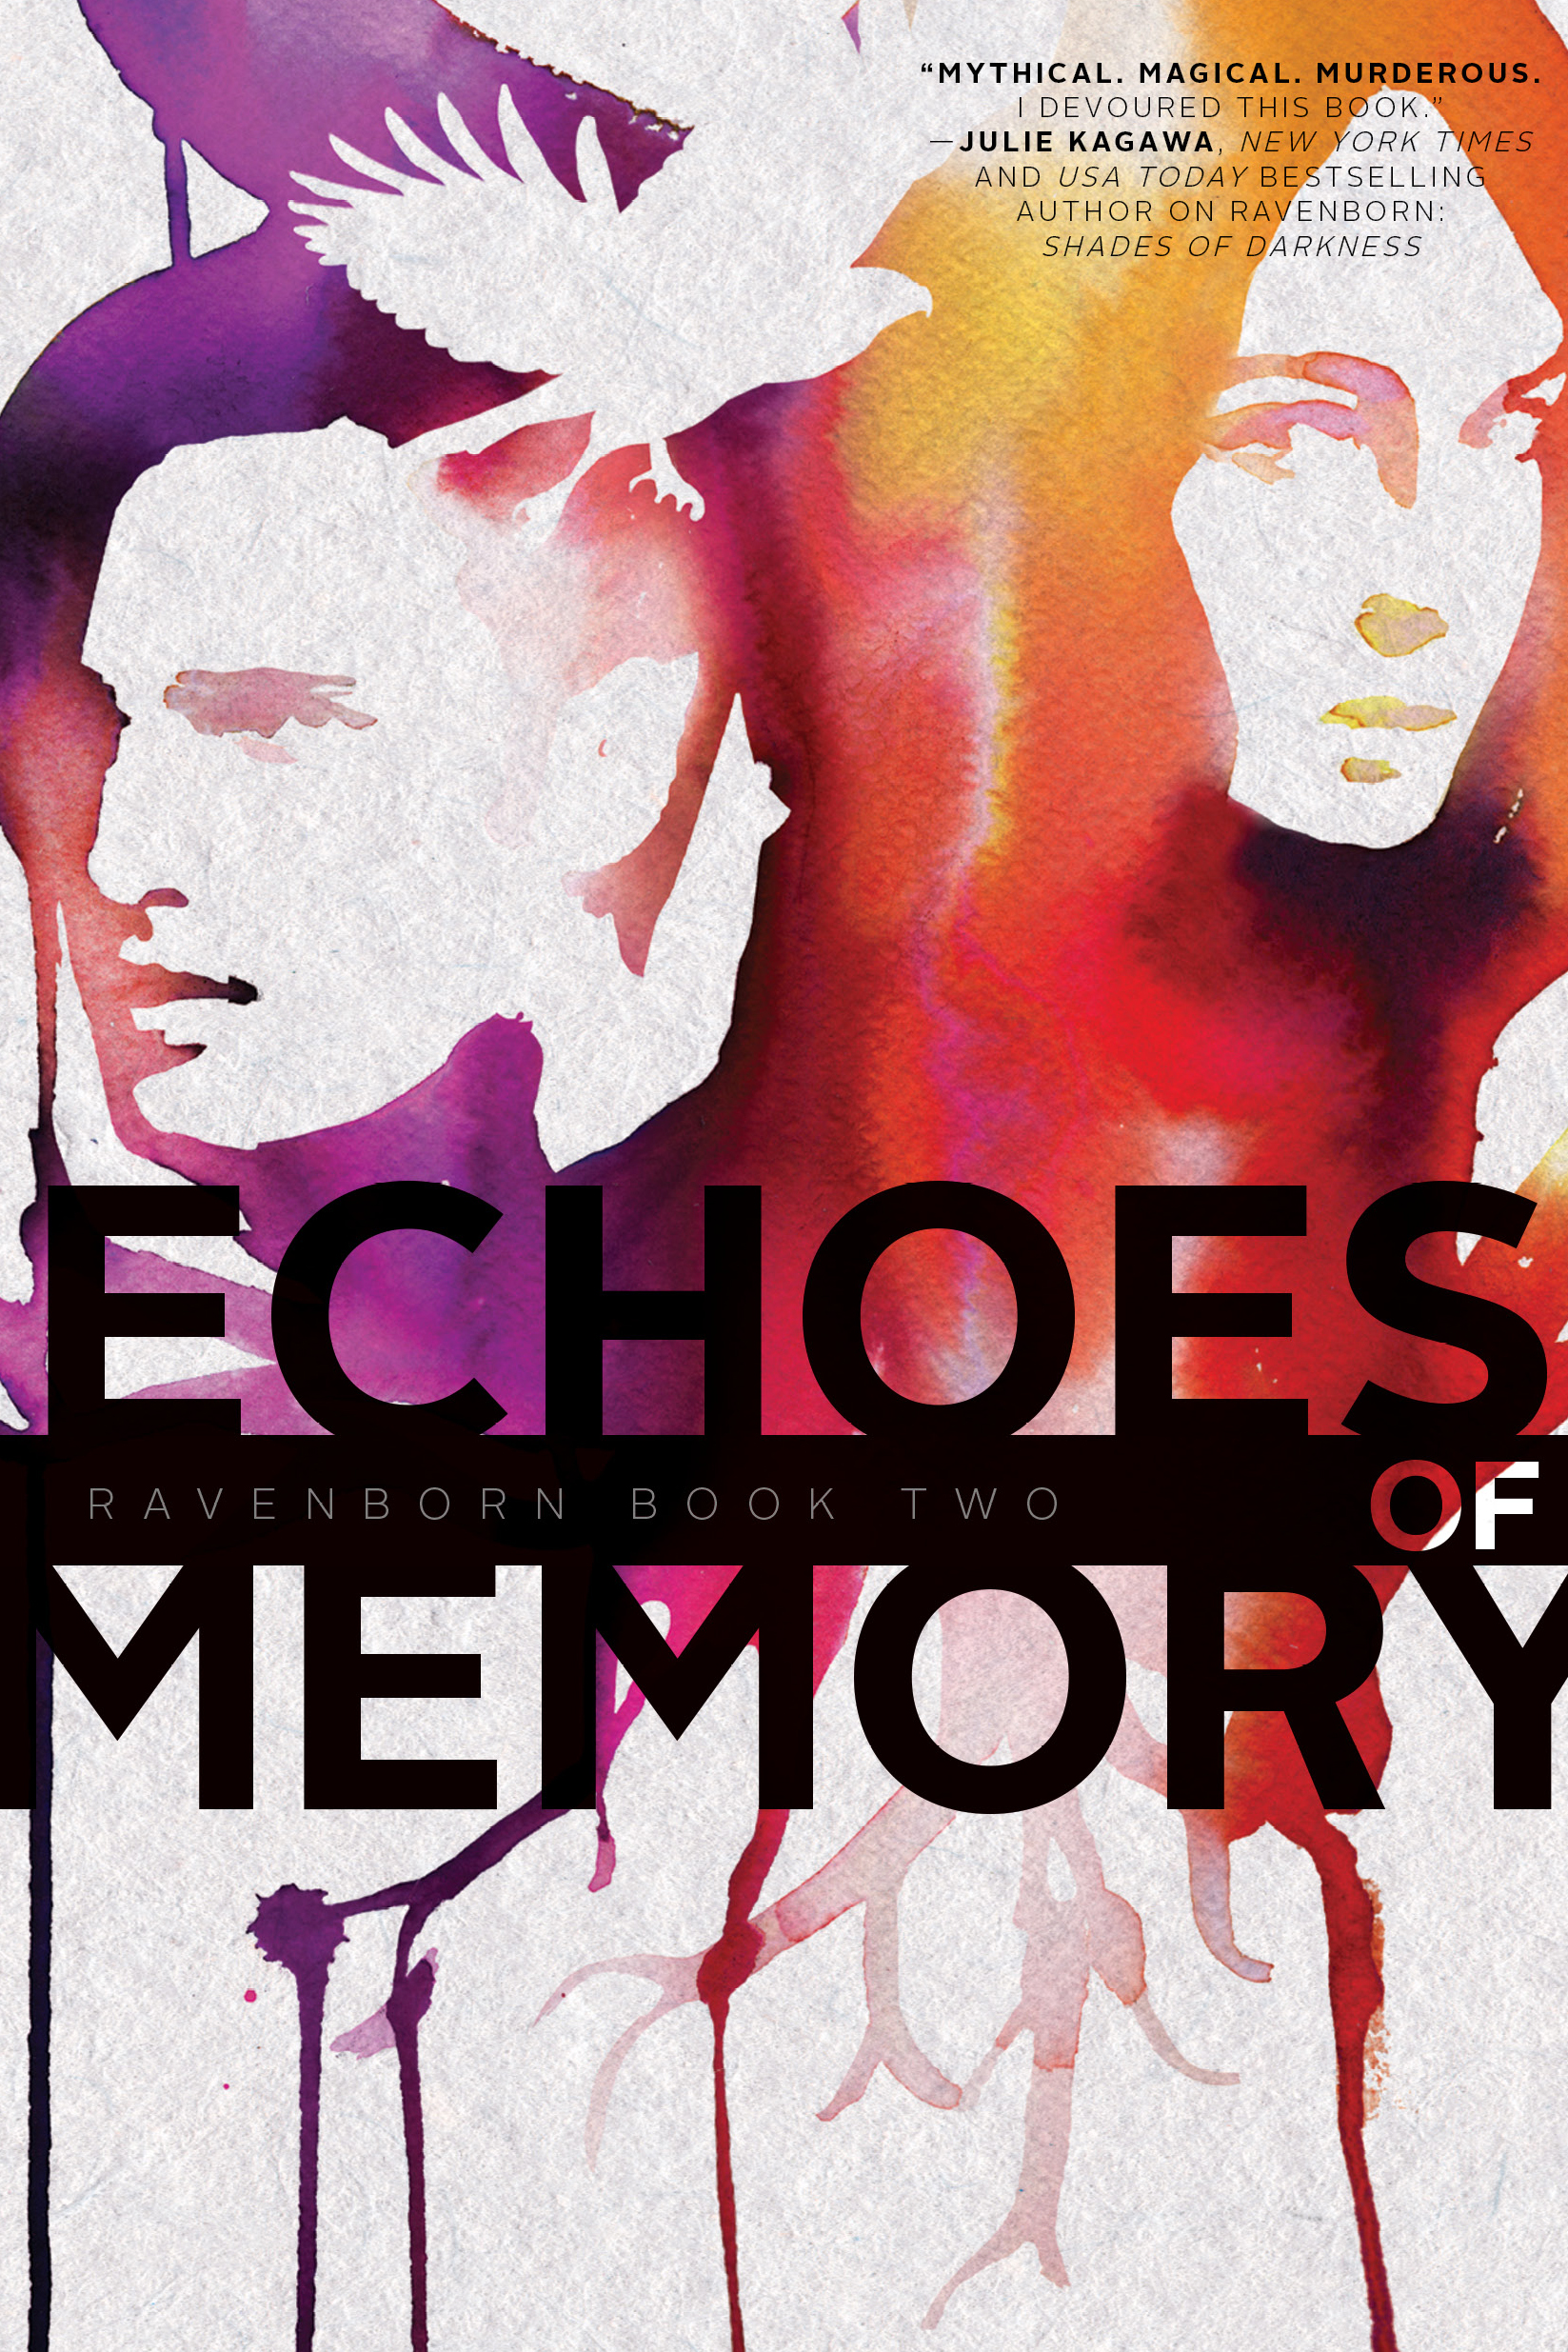 Image result for echoes of memory kahler